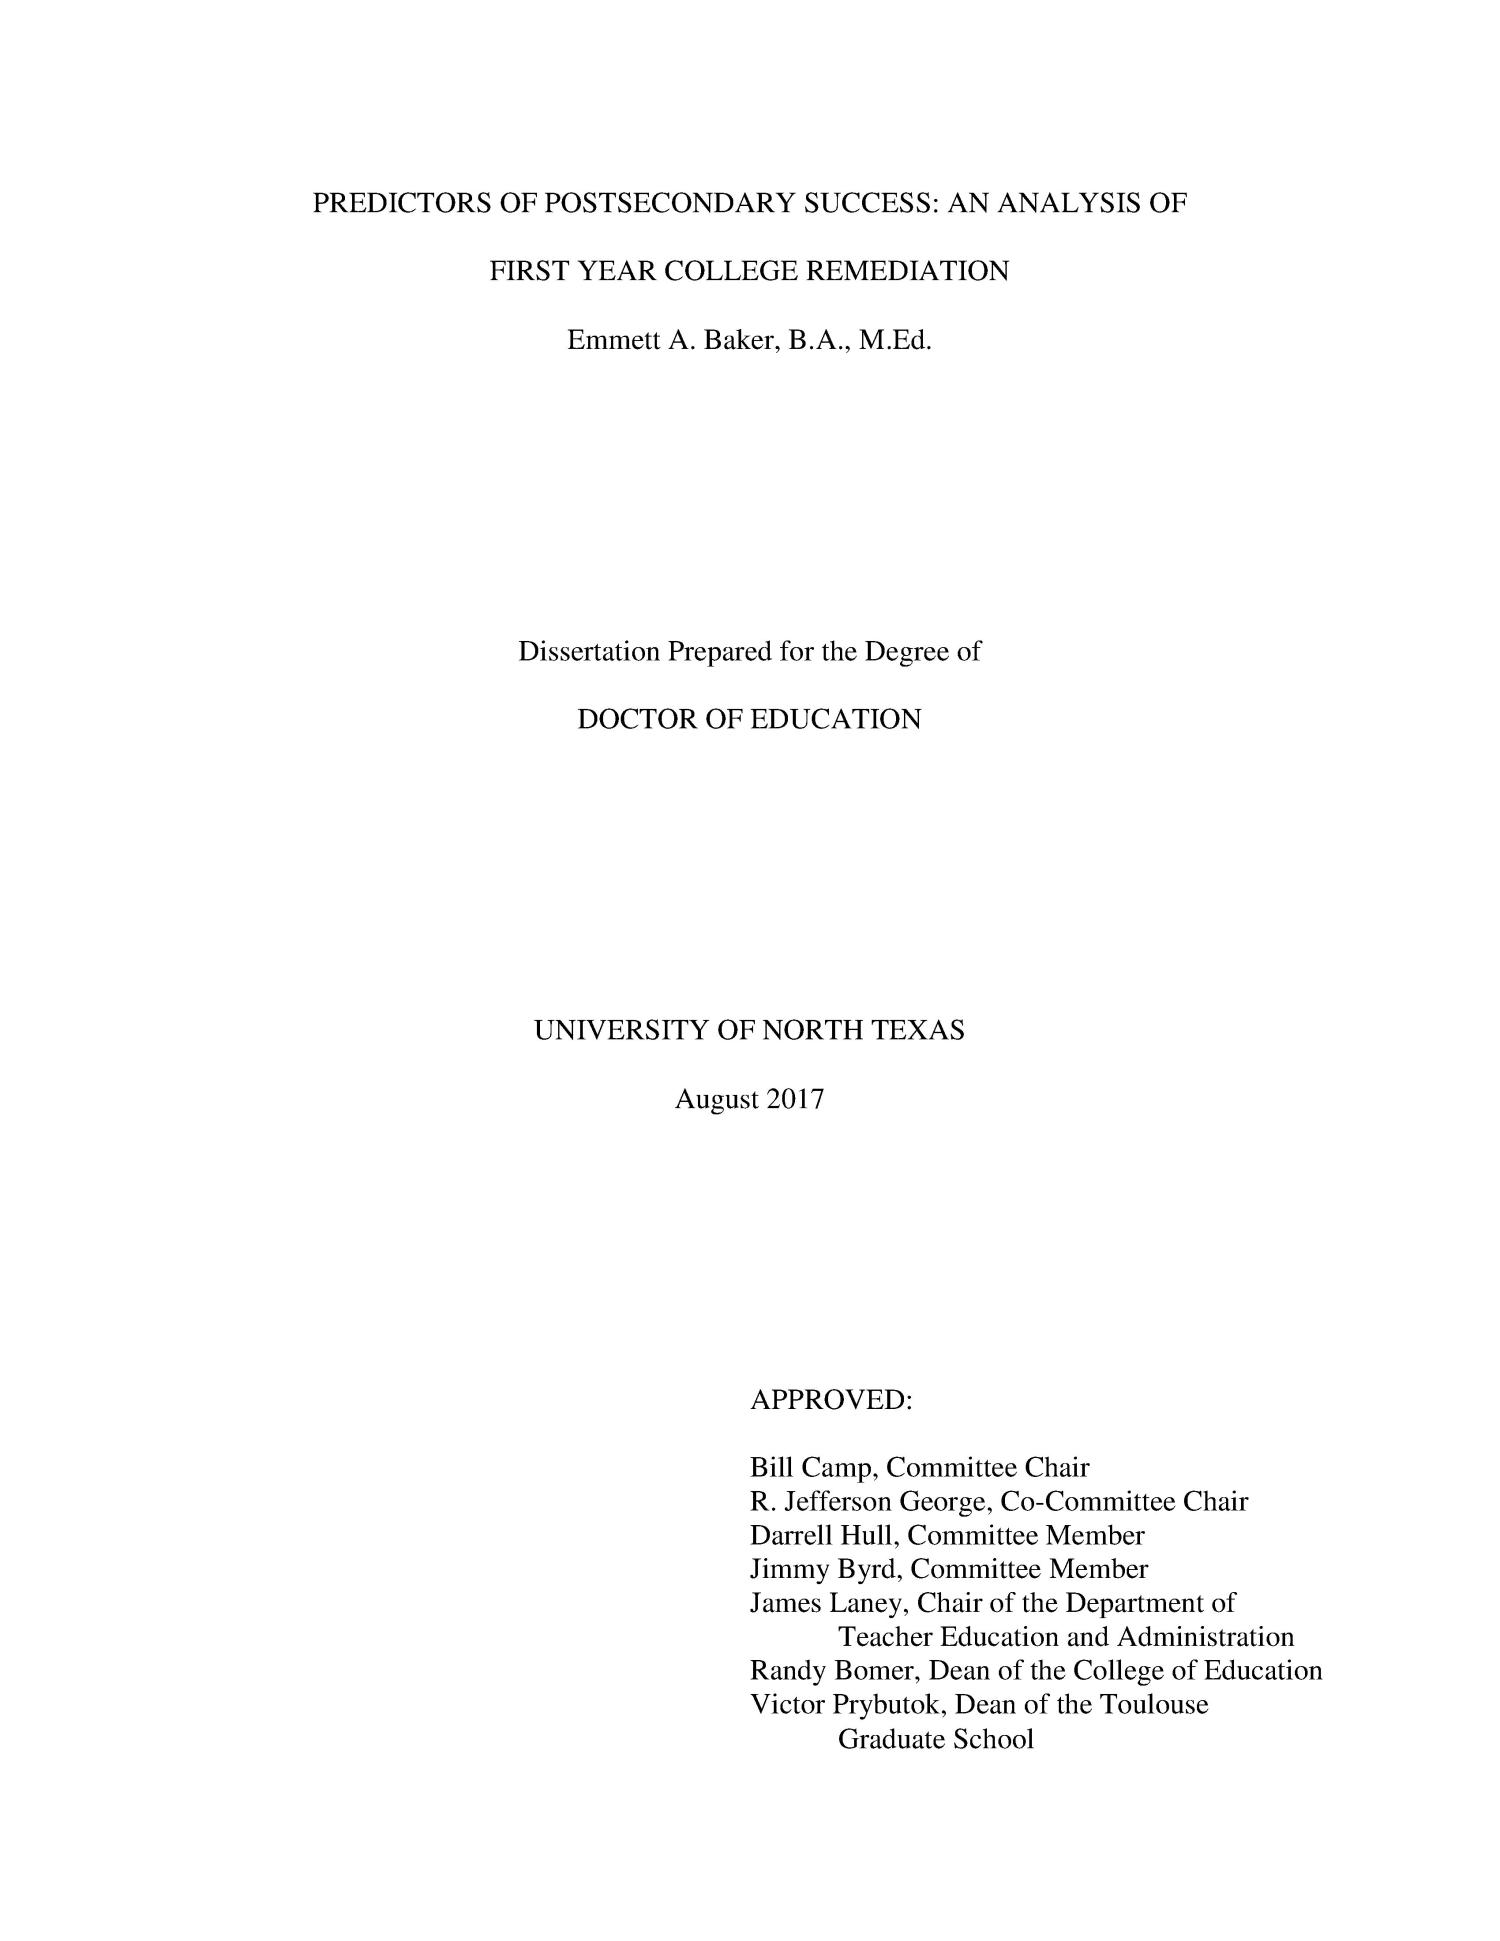 Predictors of Postsecondary Success: An Analysis of First Year College Remediation                                                                                                      Title Page